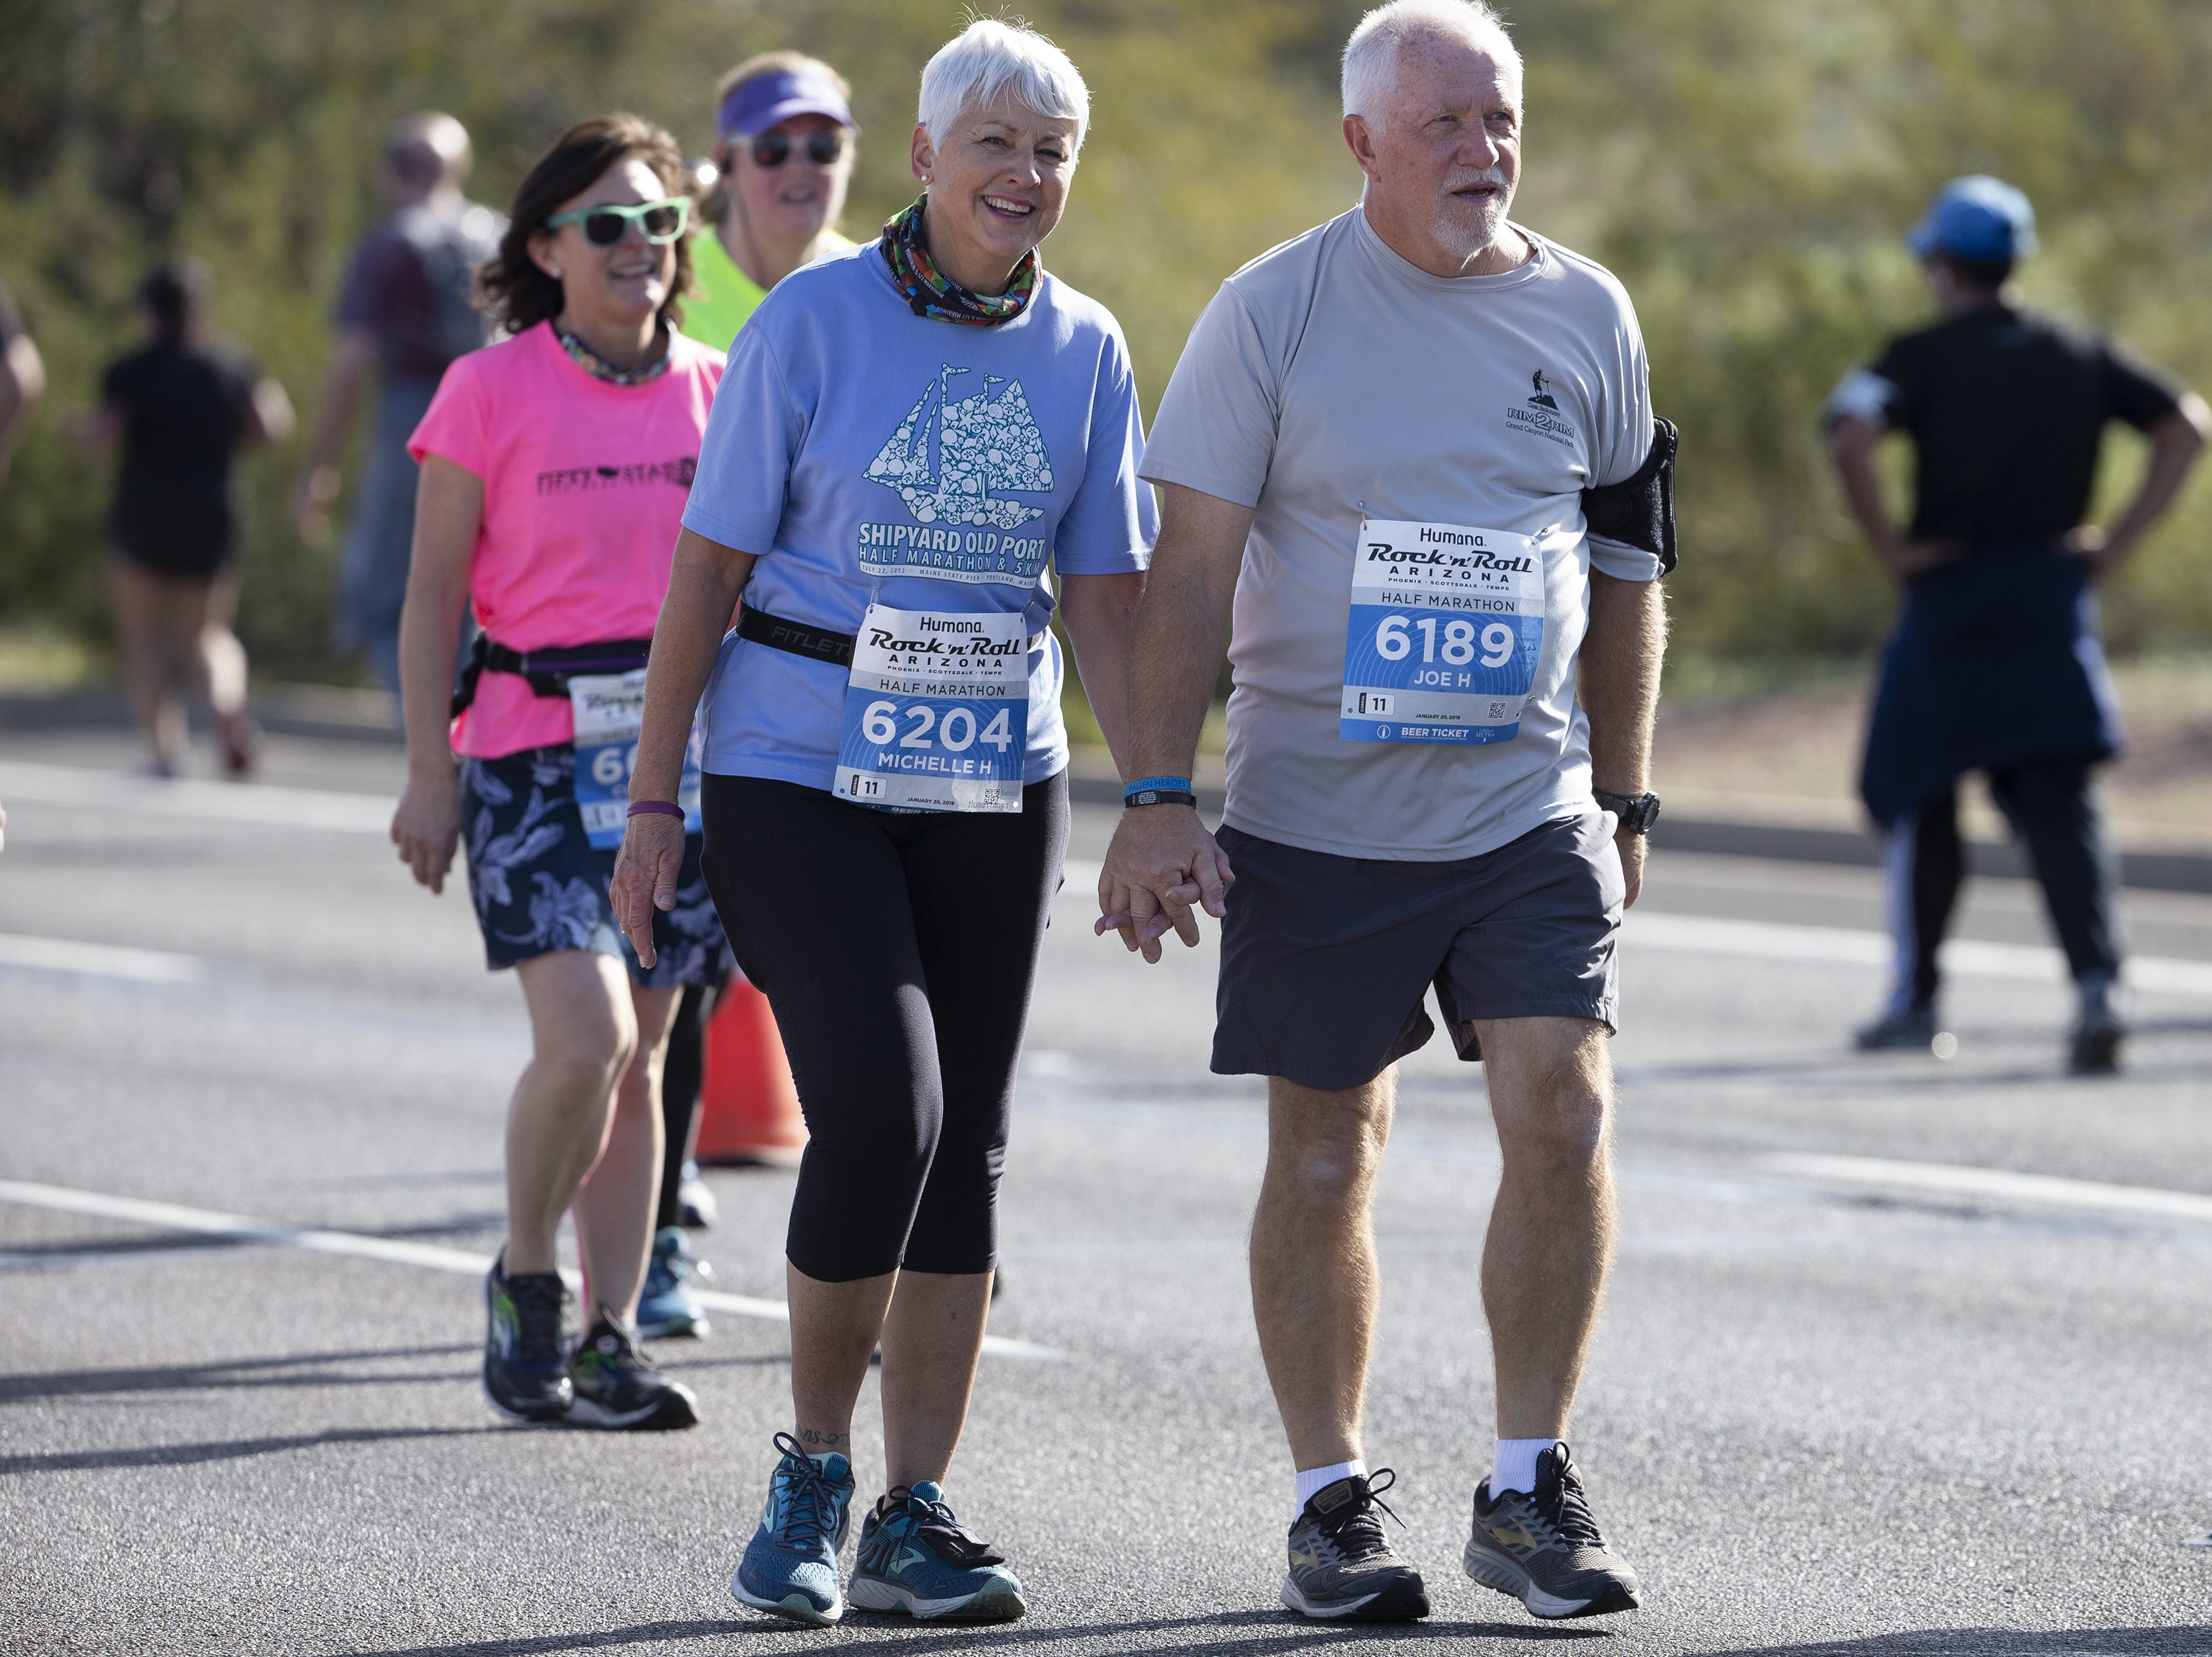 Runners compete in the Humana Rock 'N' Roll half-marathon near Papago Park on Jan. 20, 2019.